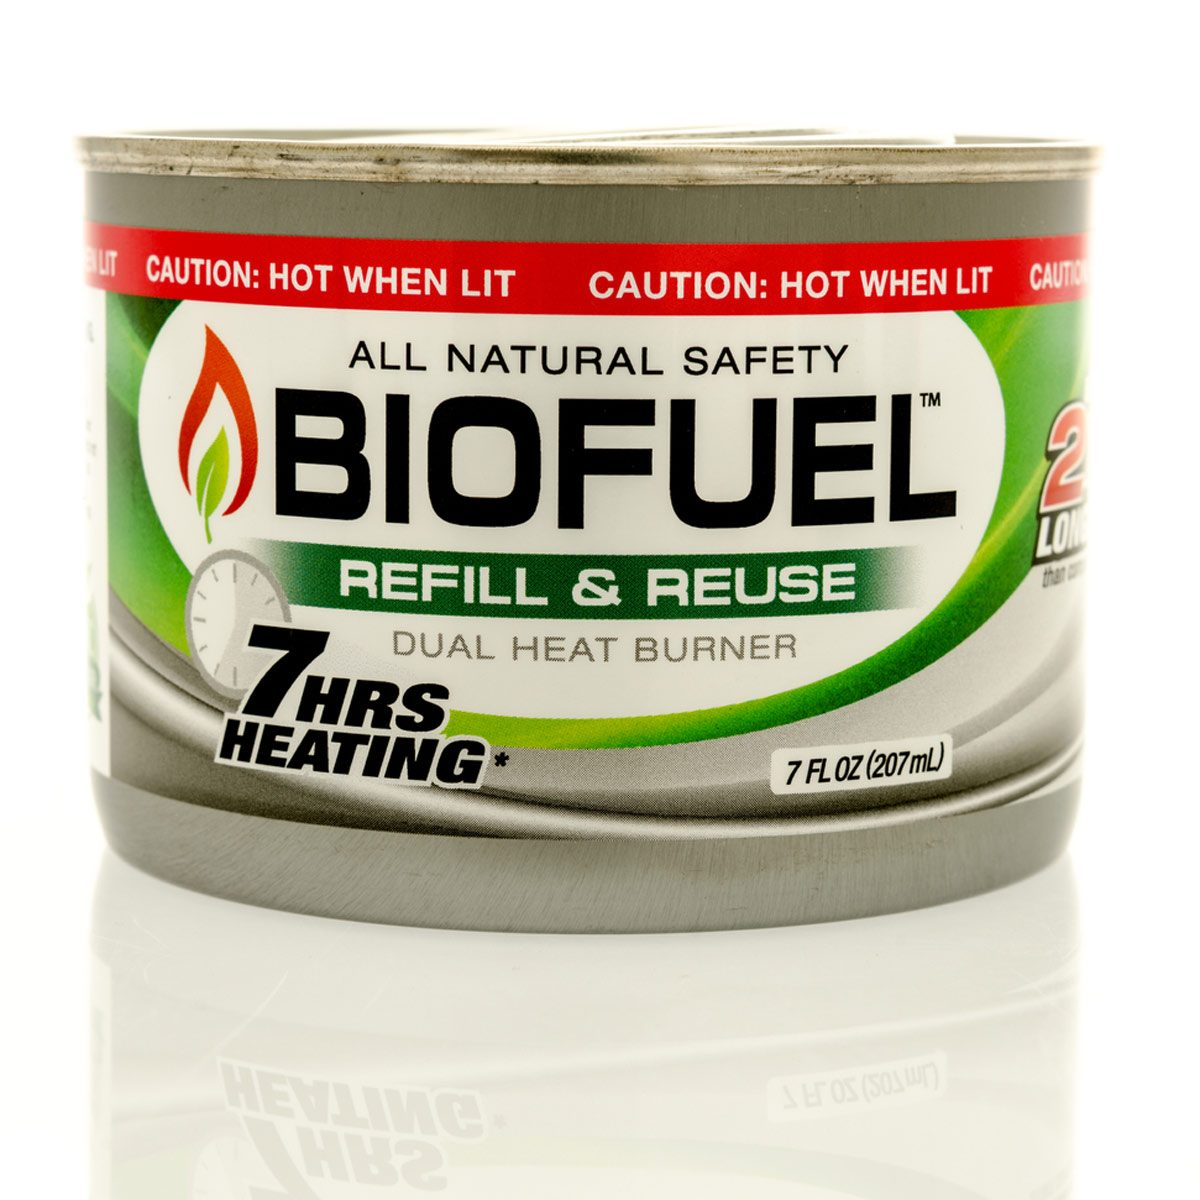 Cans of Biofuel